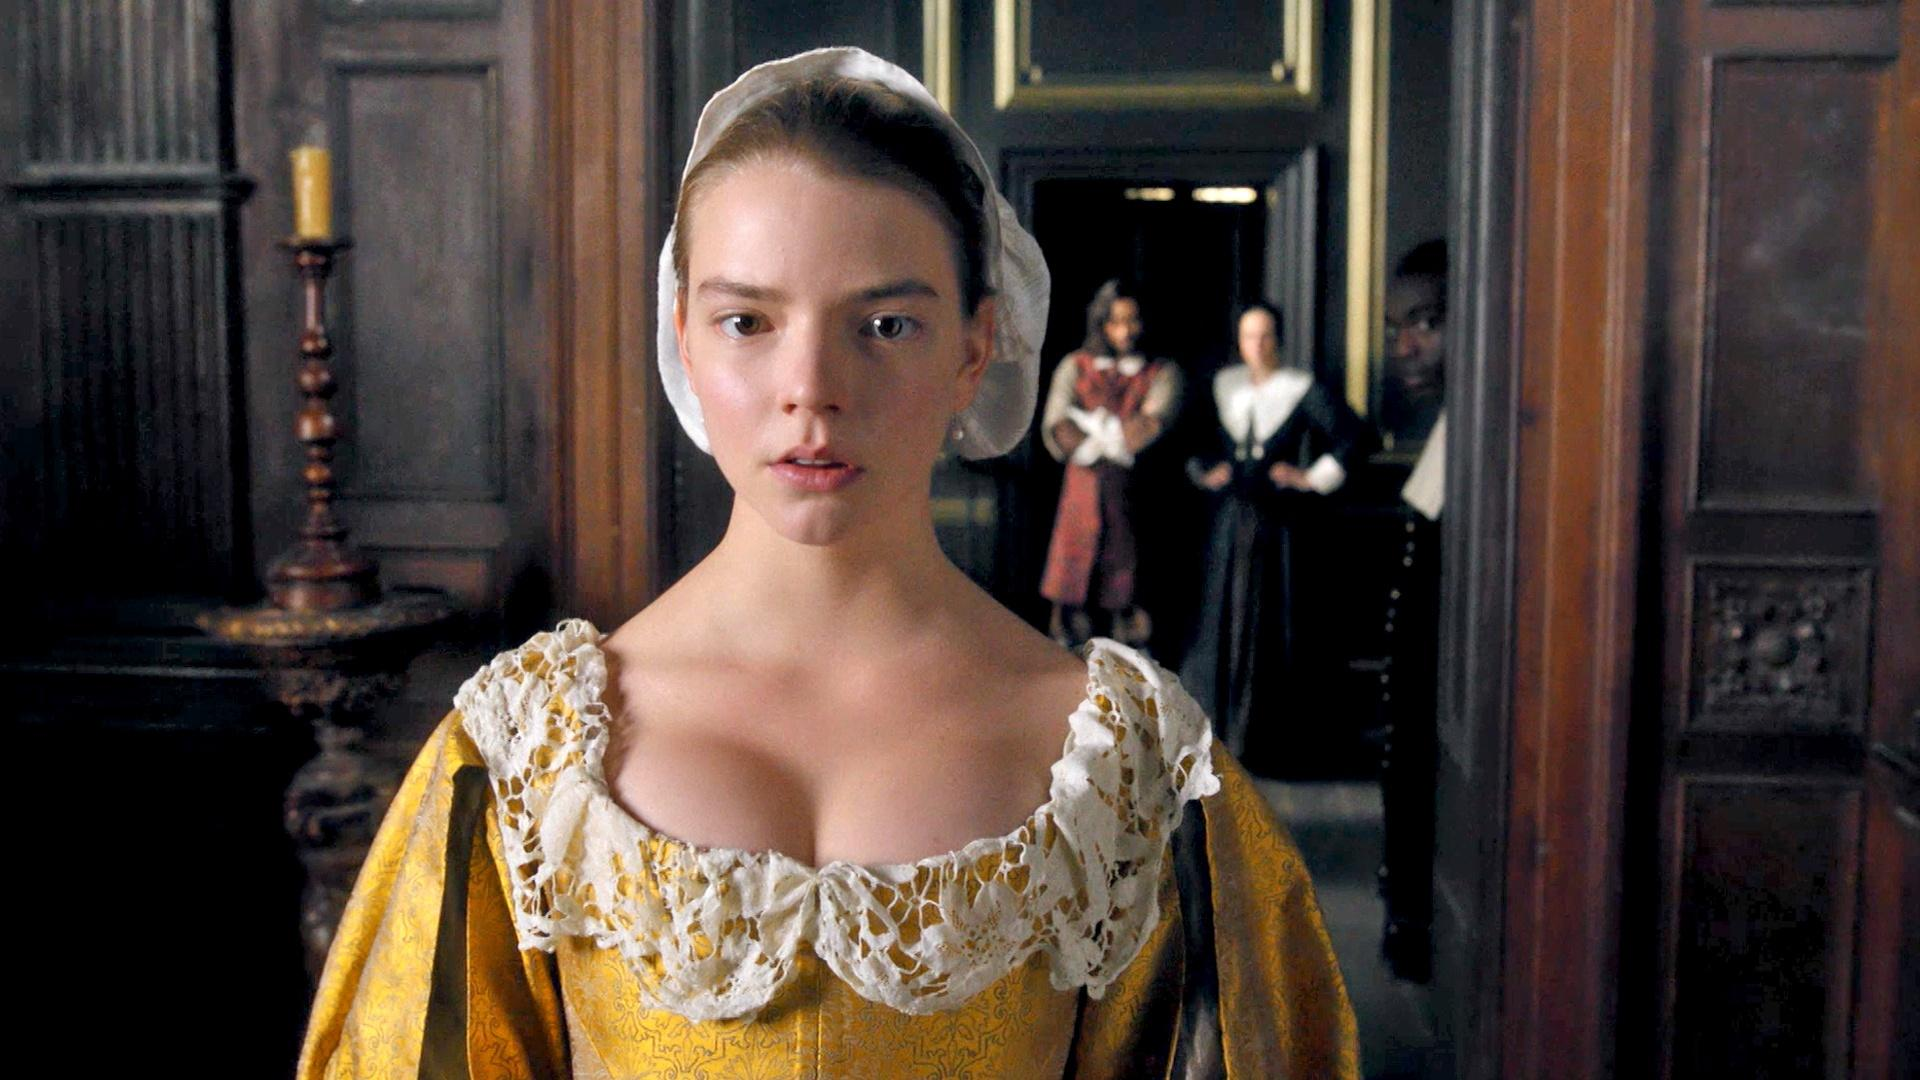 A young woman in 17th century bright yellow dress stands in a wood paneled interior. People are down the hall looking at her.